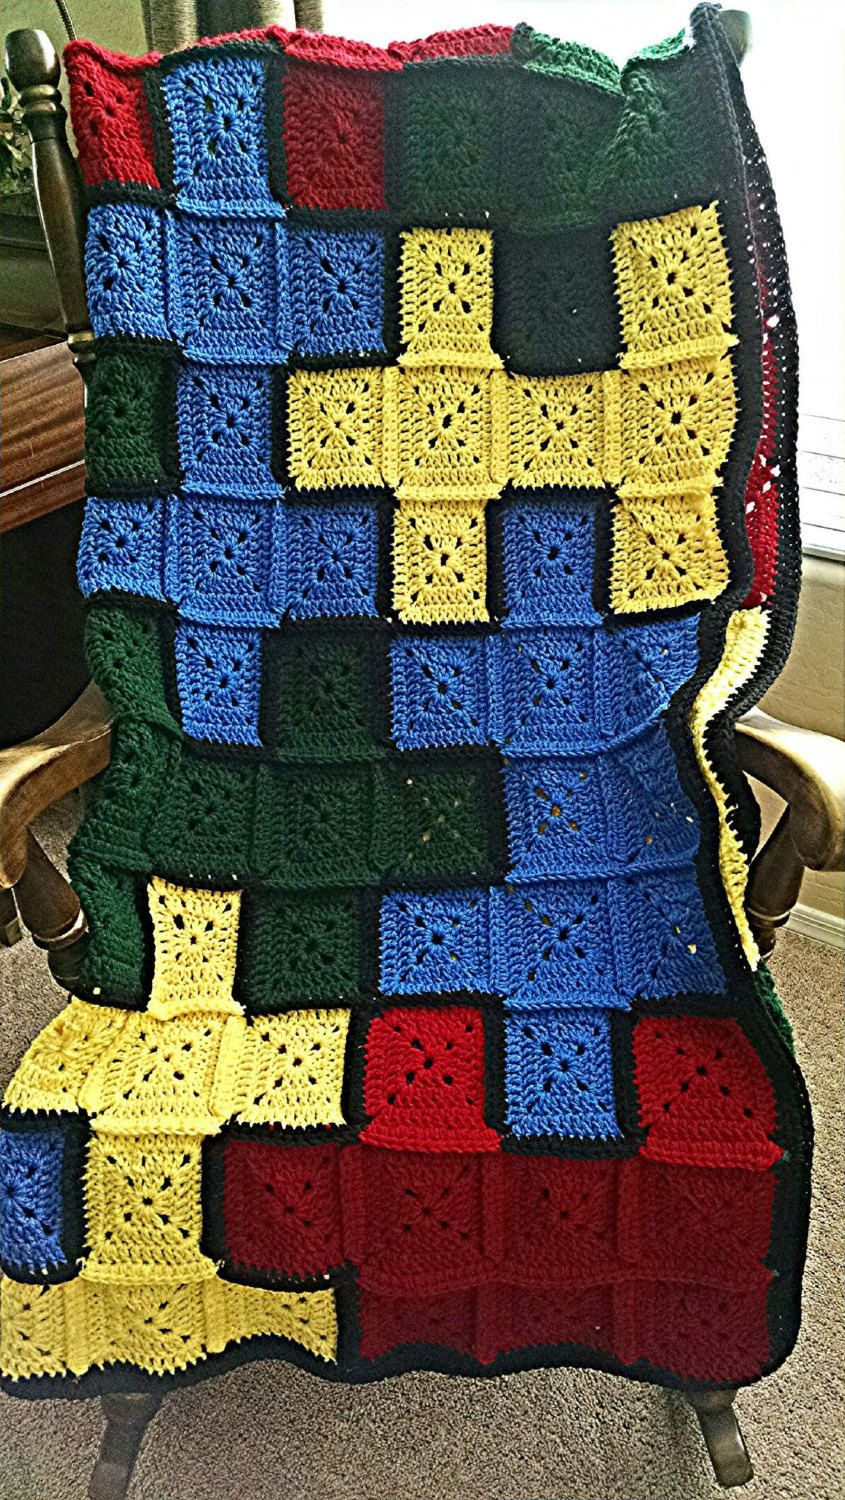 Handmade Crocheted - Granny Square Autism Awareness Afghan - Puzzle ...